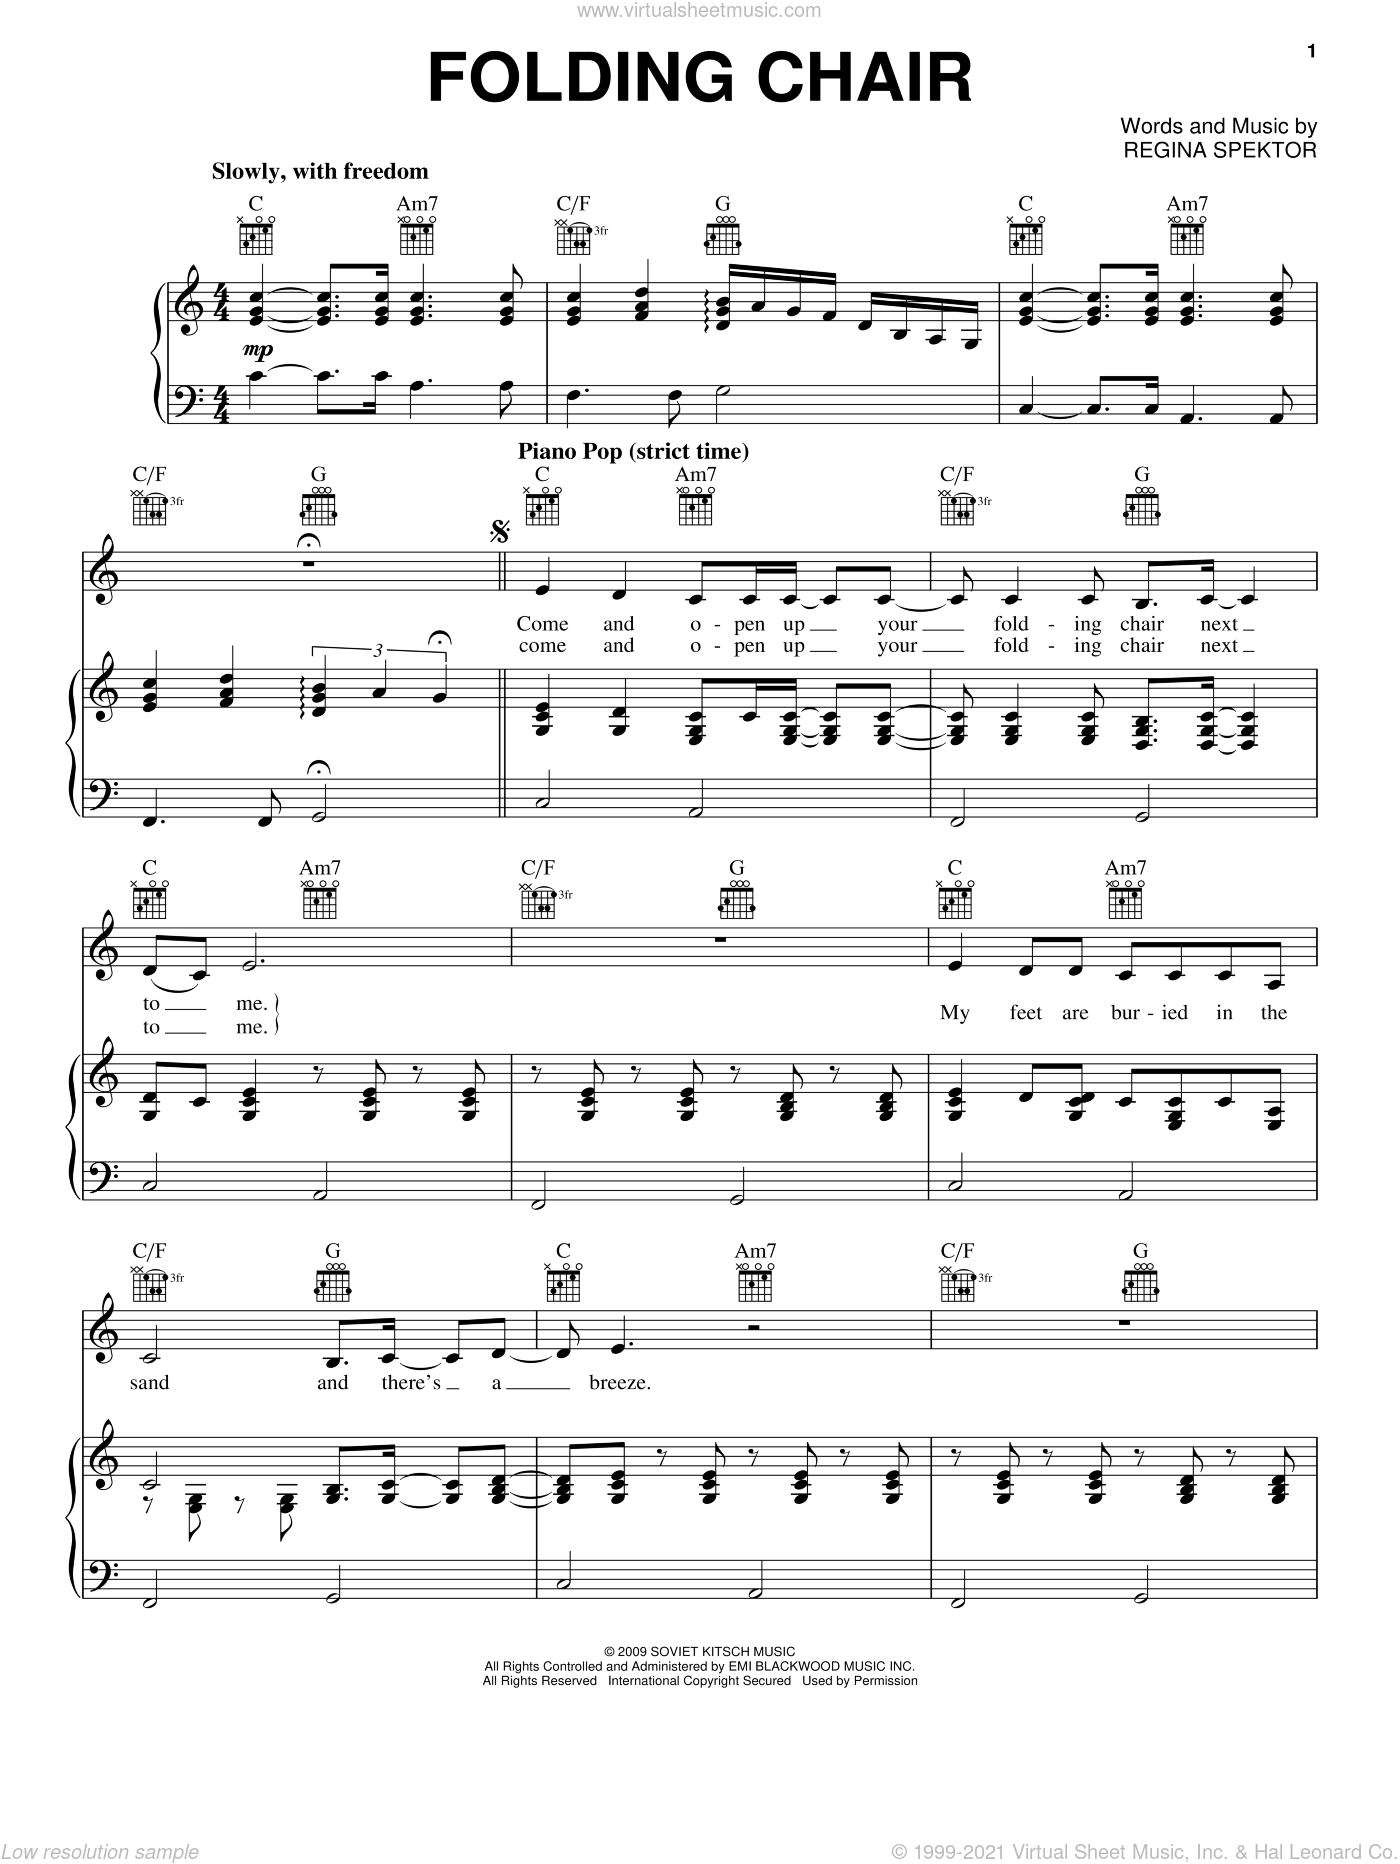 Folding Chair sheet music for voice, piano or guitar by Regina Spektor, intermediate skill level